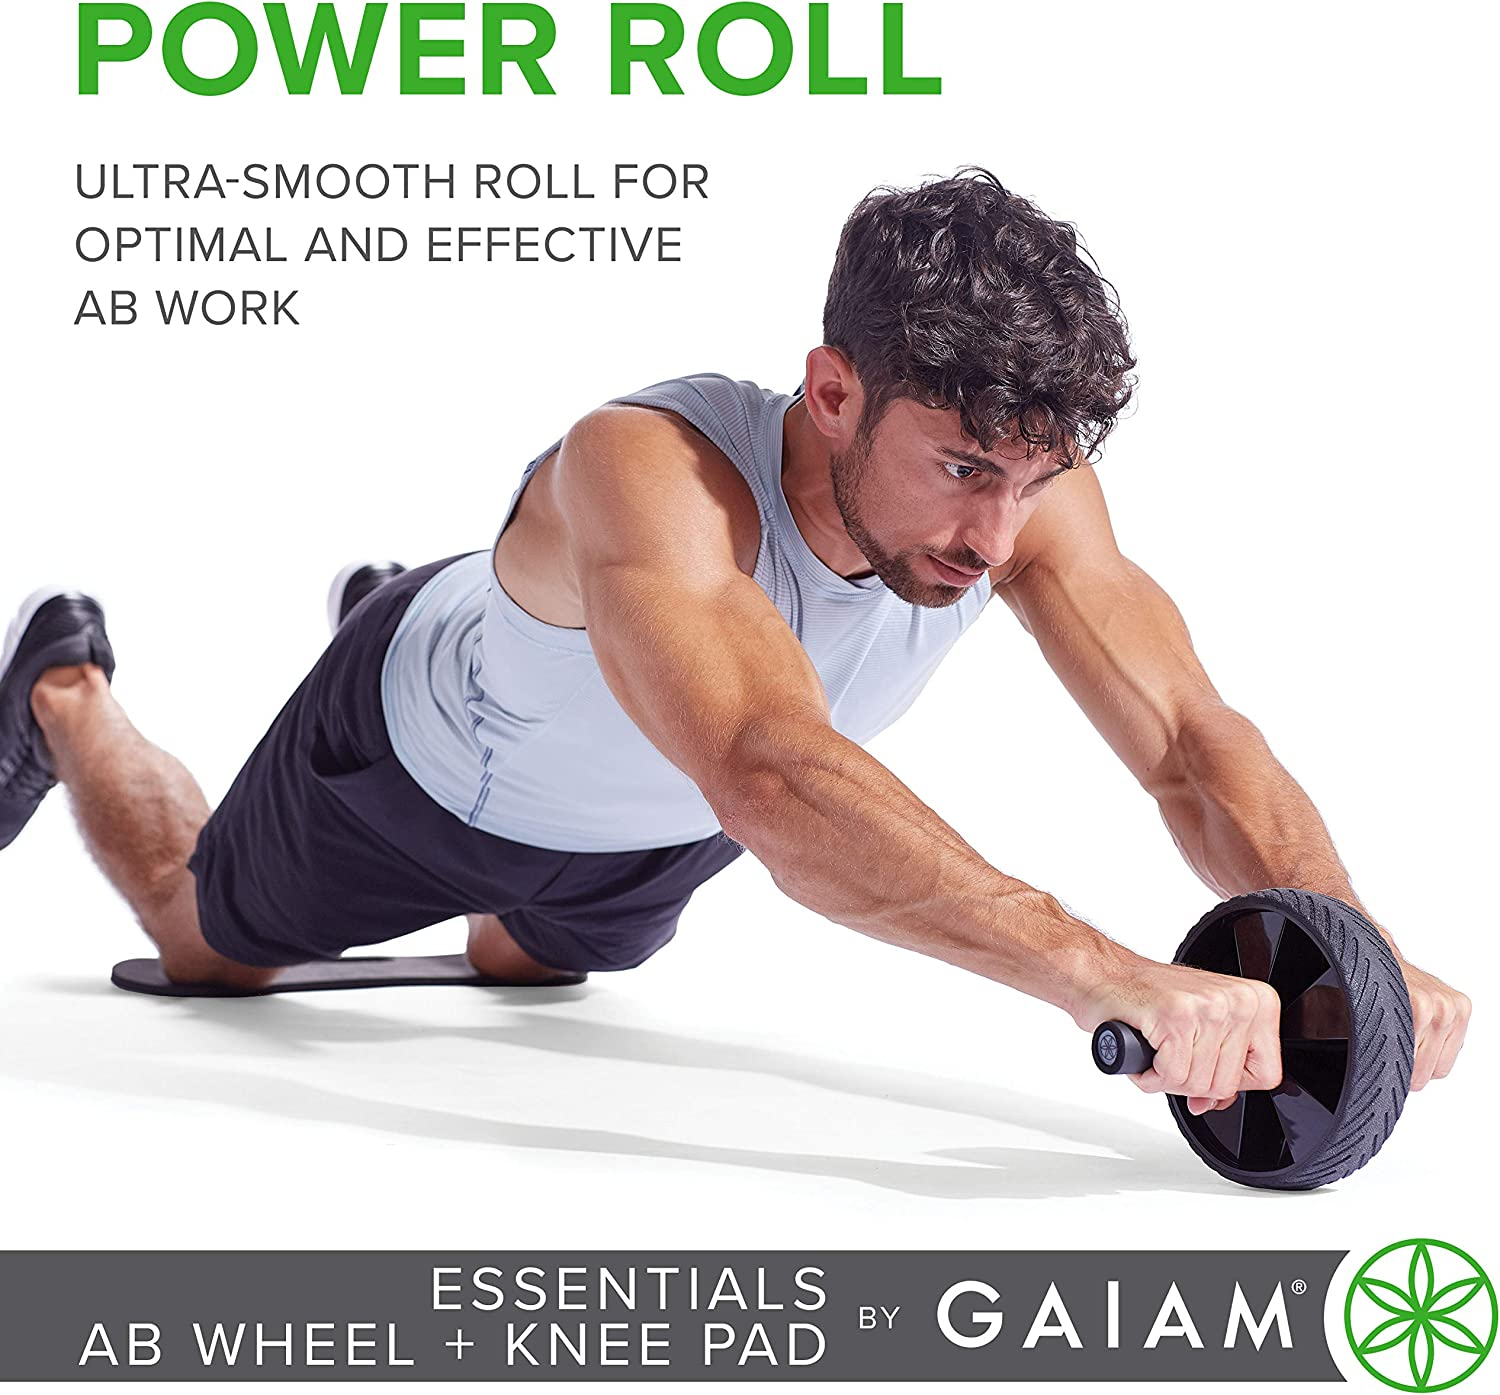 Abs Workout Exercise Equipment Core Training Fitness Equipment with Non-Slip Handles Ab Trainer for Home Gym PanAme Abdominal Wheel